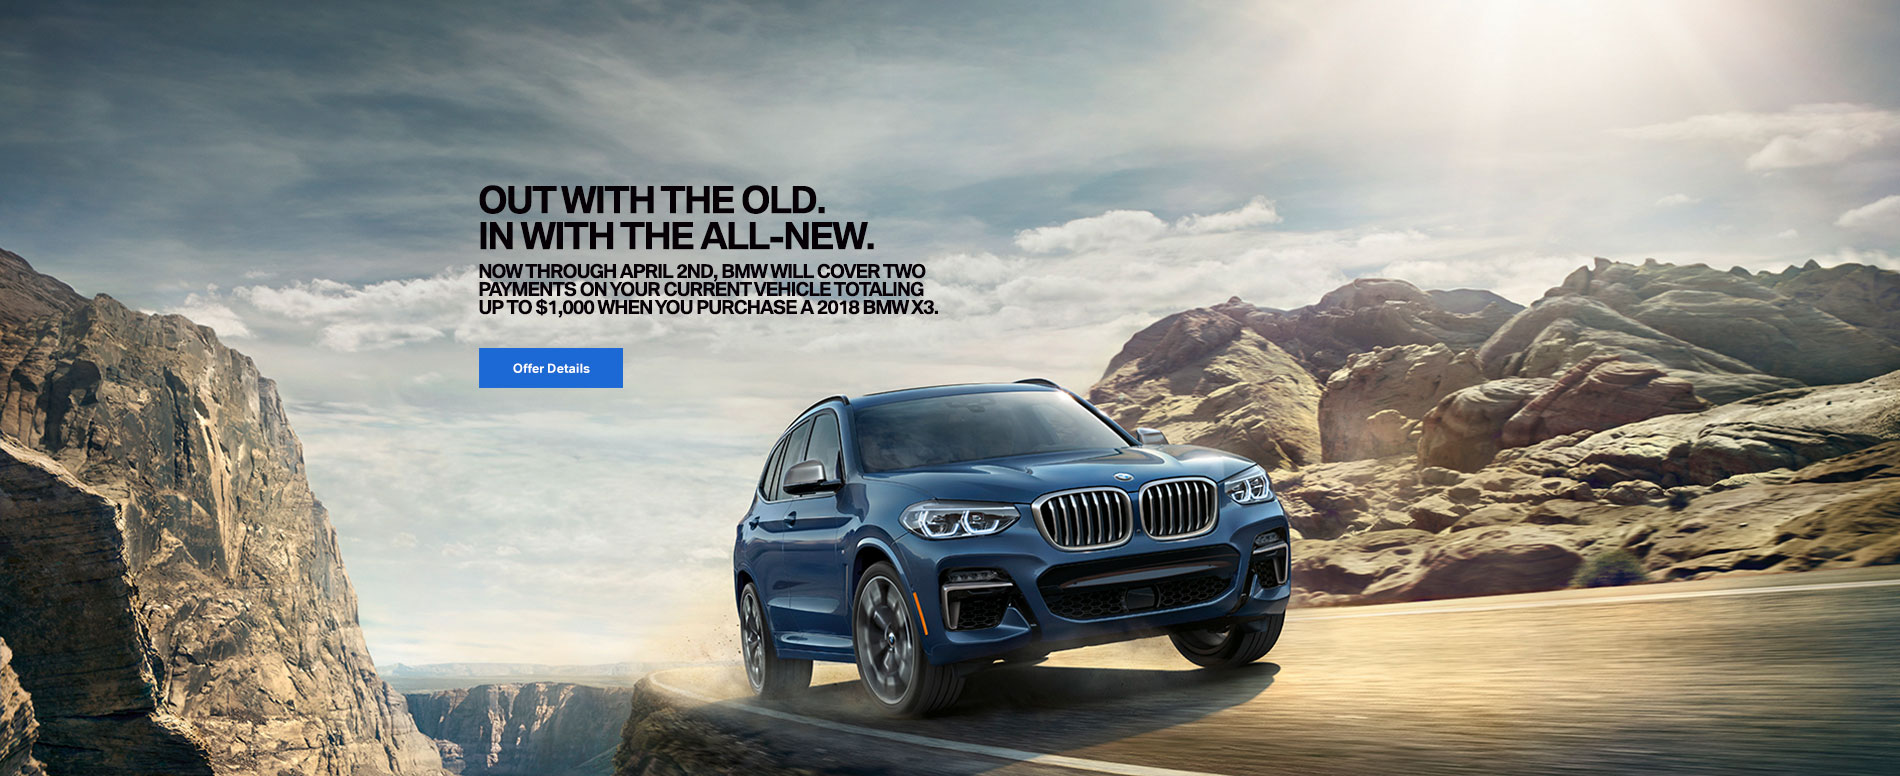 All-New X3 CAPABLE OF MORE